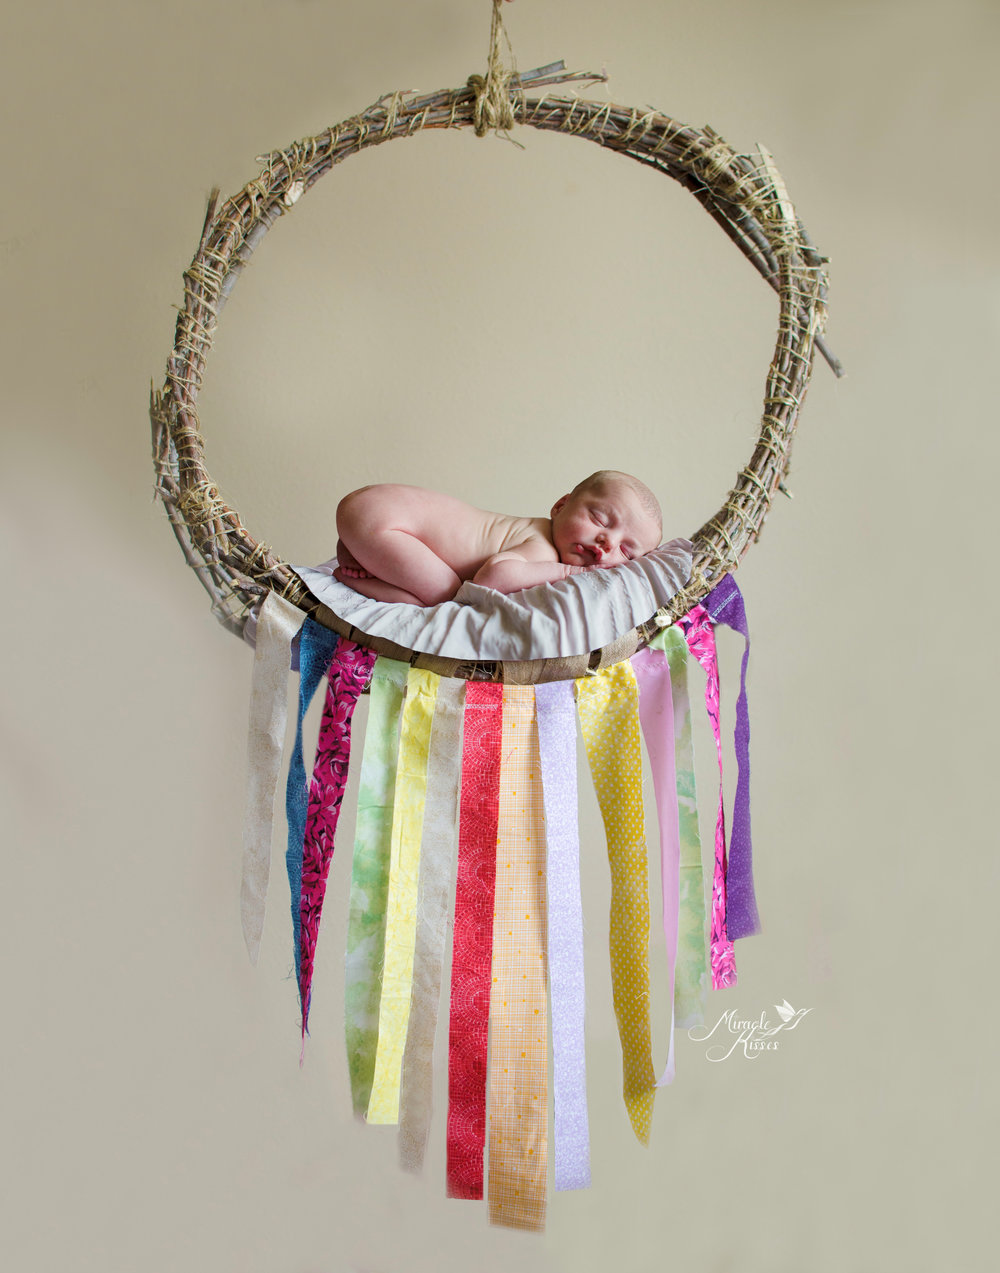 Dreamcatcher baby, colorado newborn photographer, miracle kisses